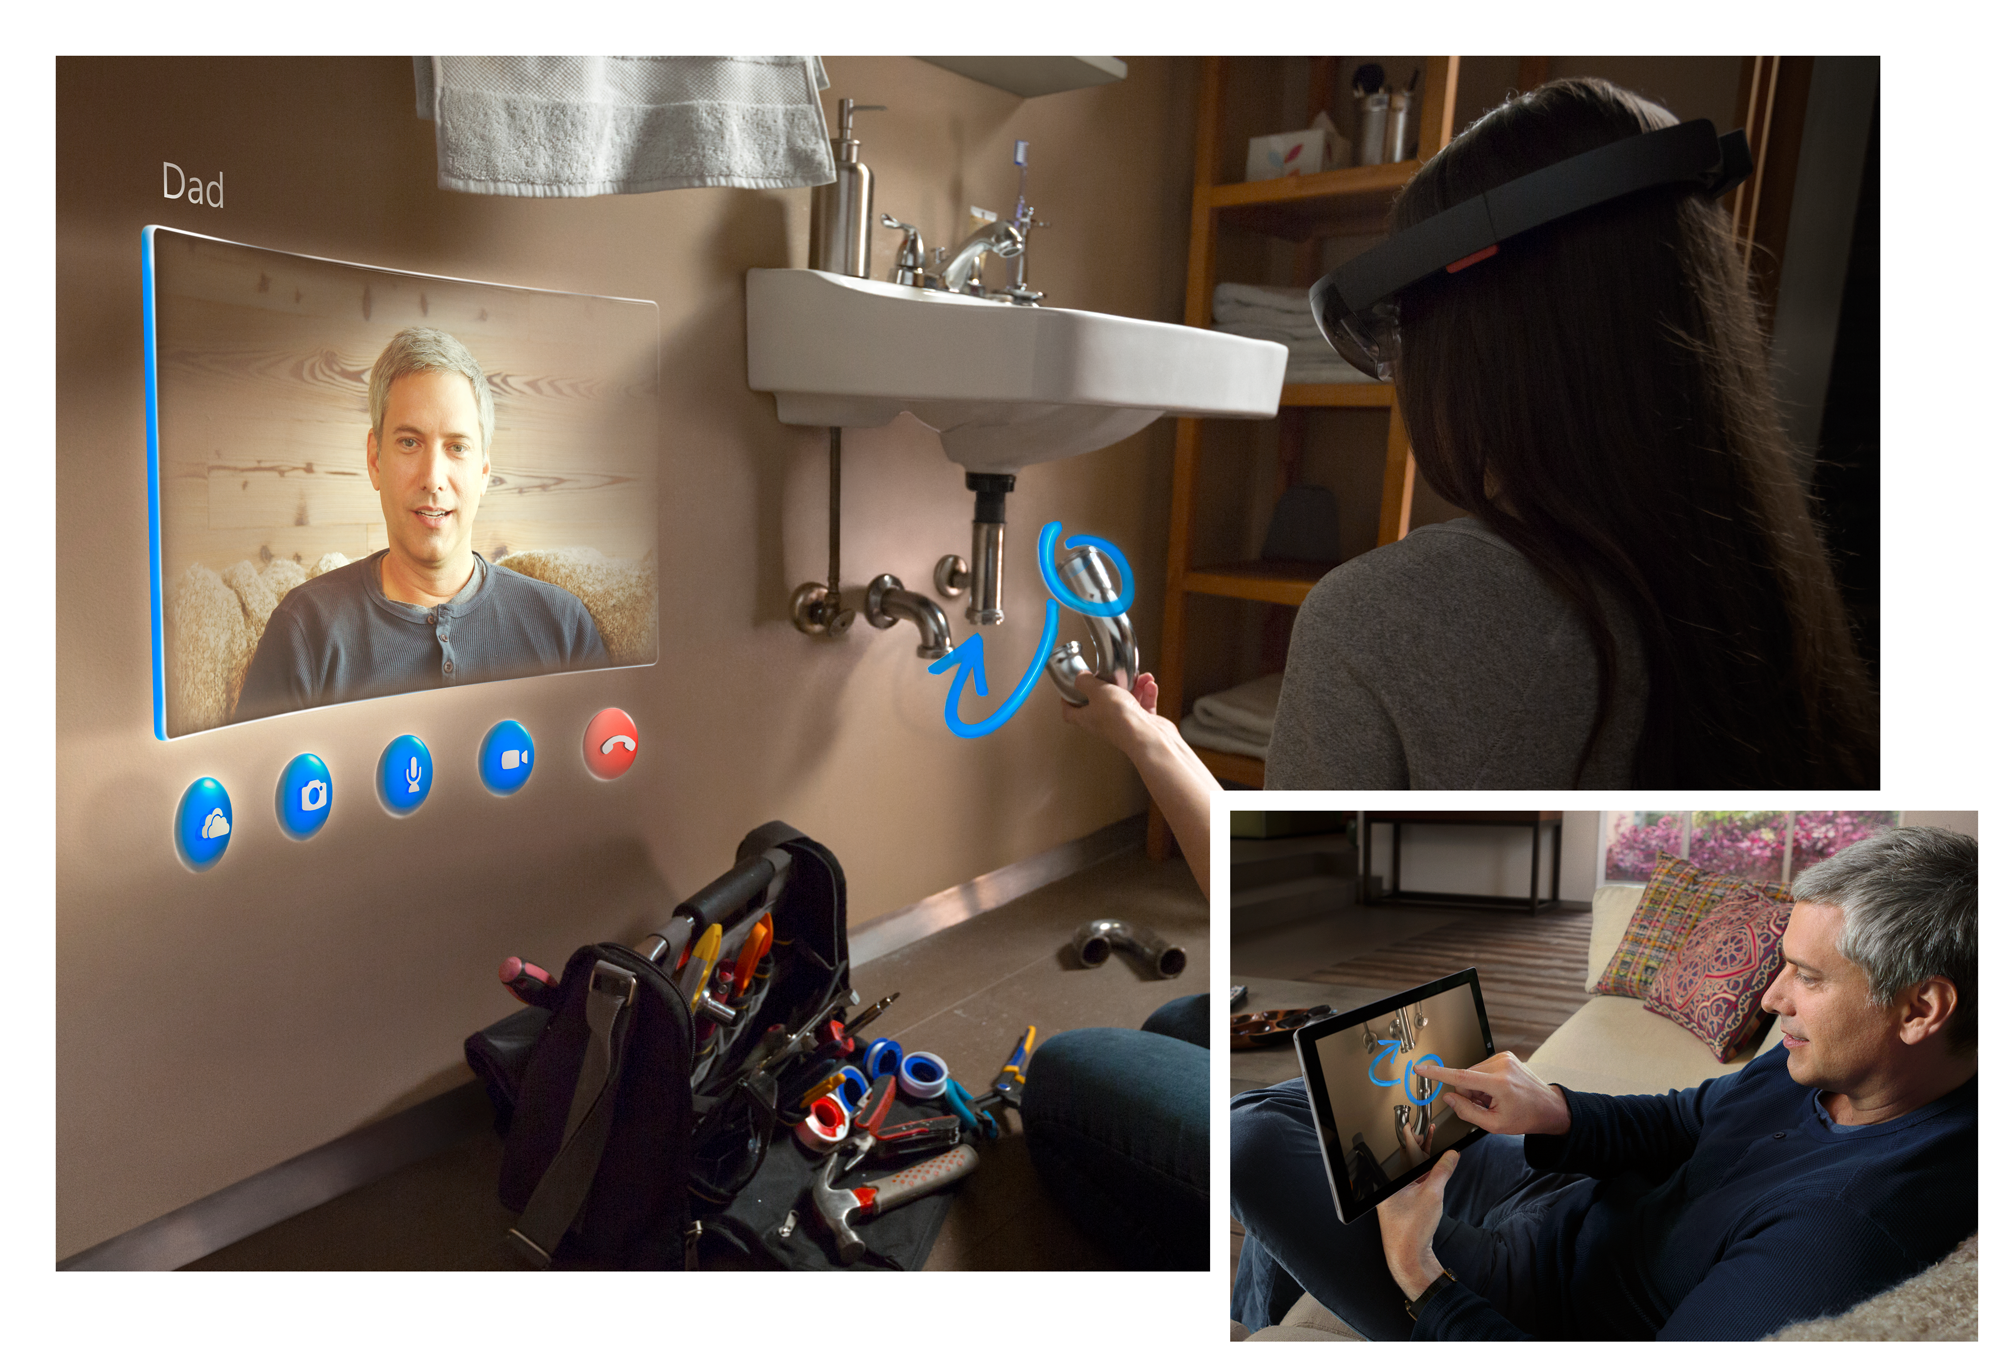 microsoft hololens brings ease to life 2015 images